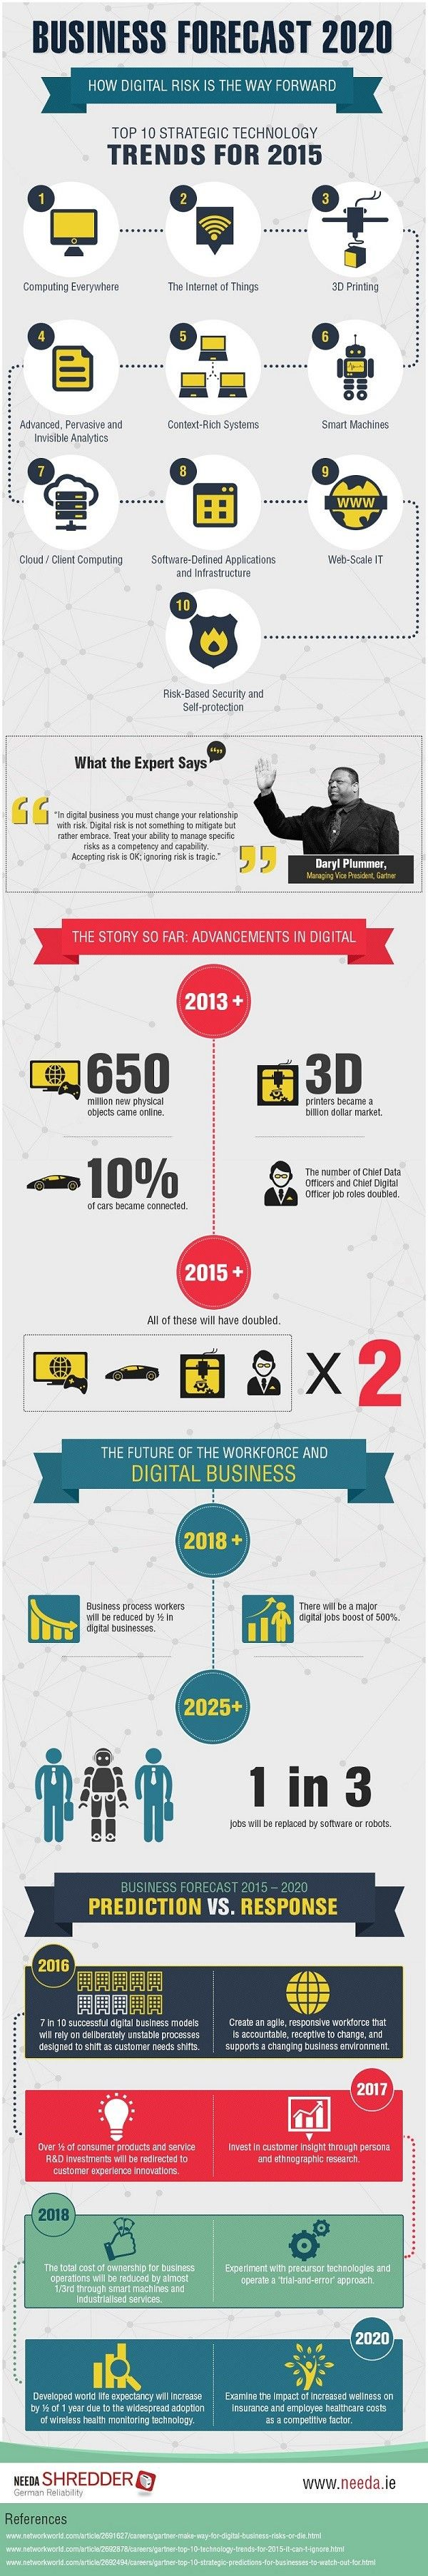 Top 10 Strategic Technology Trends for 2015 | What does this year hold for technology? Here's a look at the top technology trends for 2015 and predictions of where digital business will be in the next five years. Are you prepared?